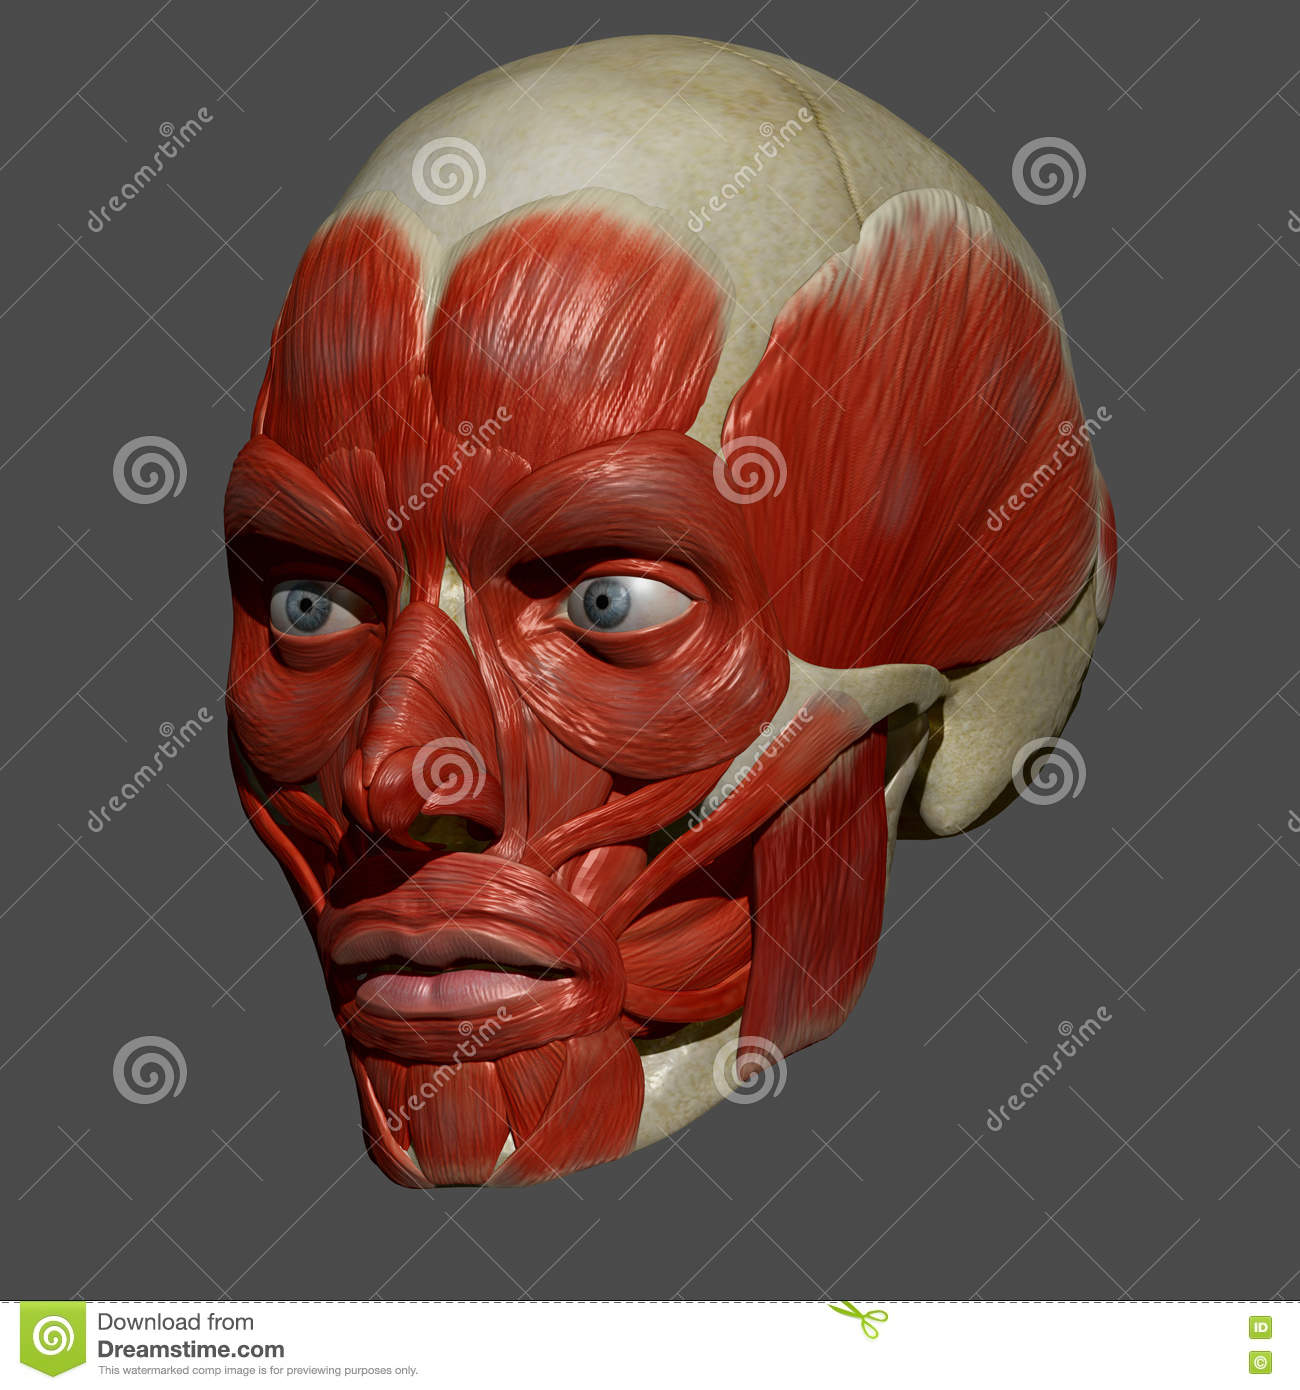 Facial Muscles stock illustration. Illustration of person - 56141232